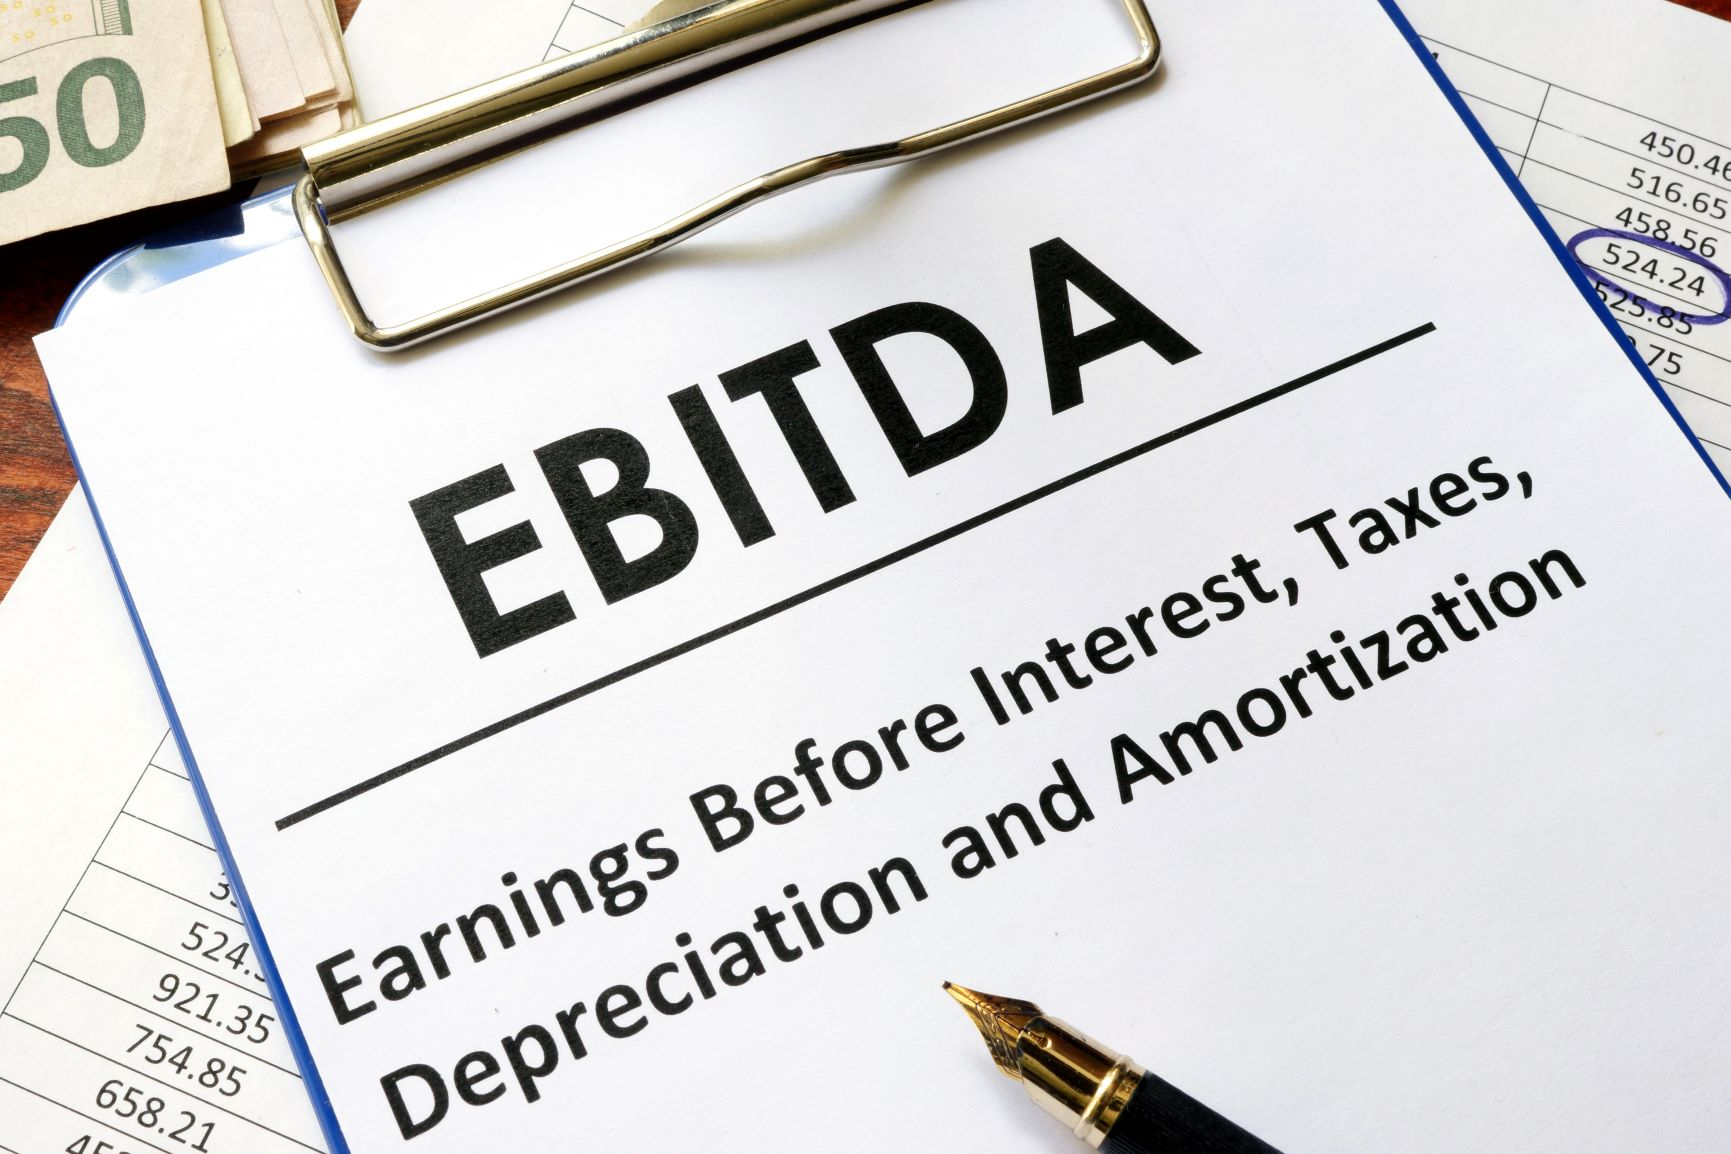 Business Valuations using EBITDA - Stirling